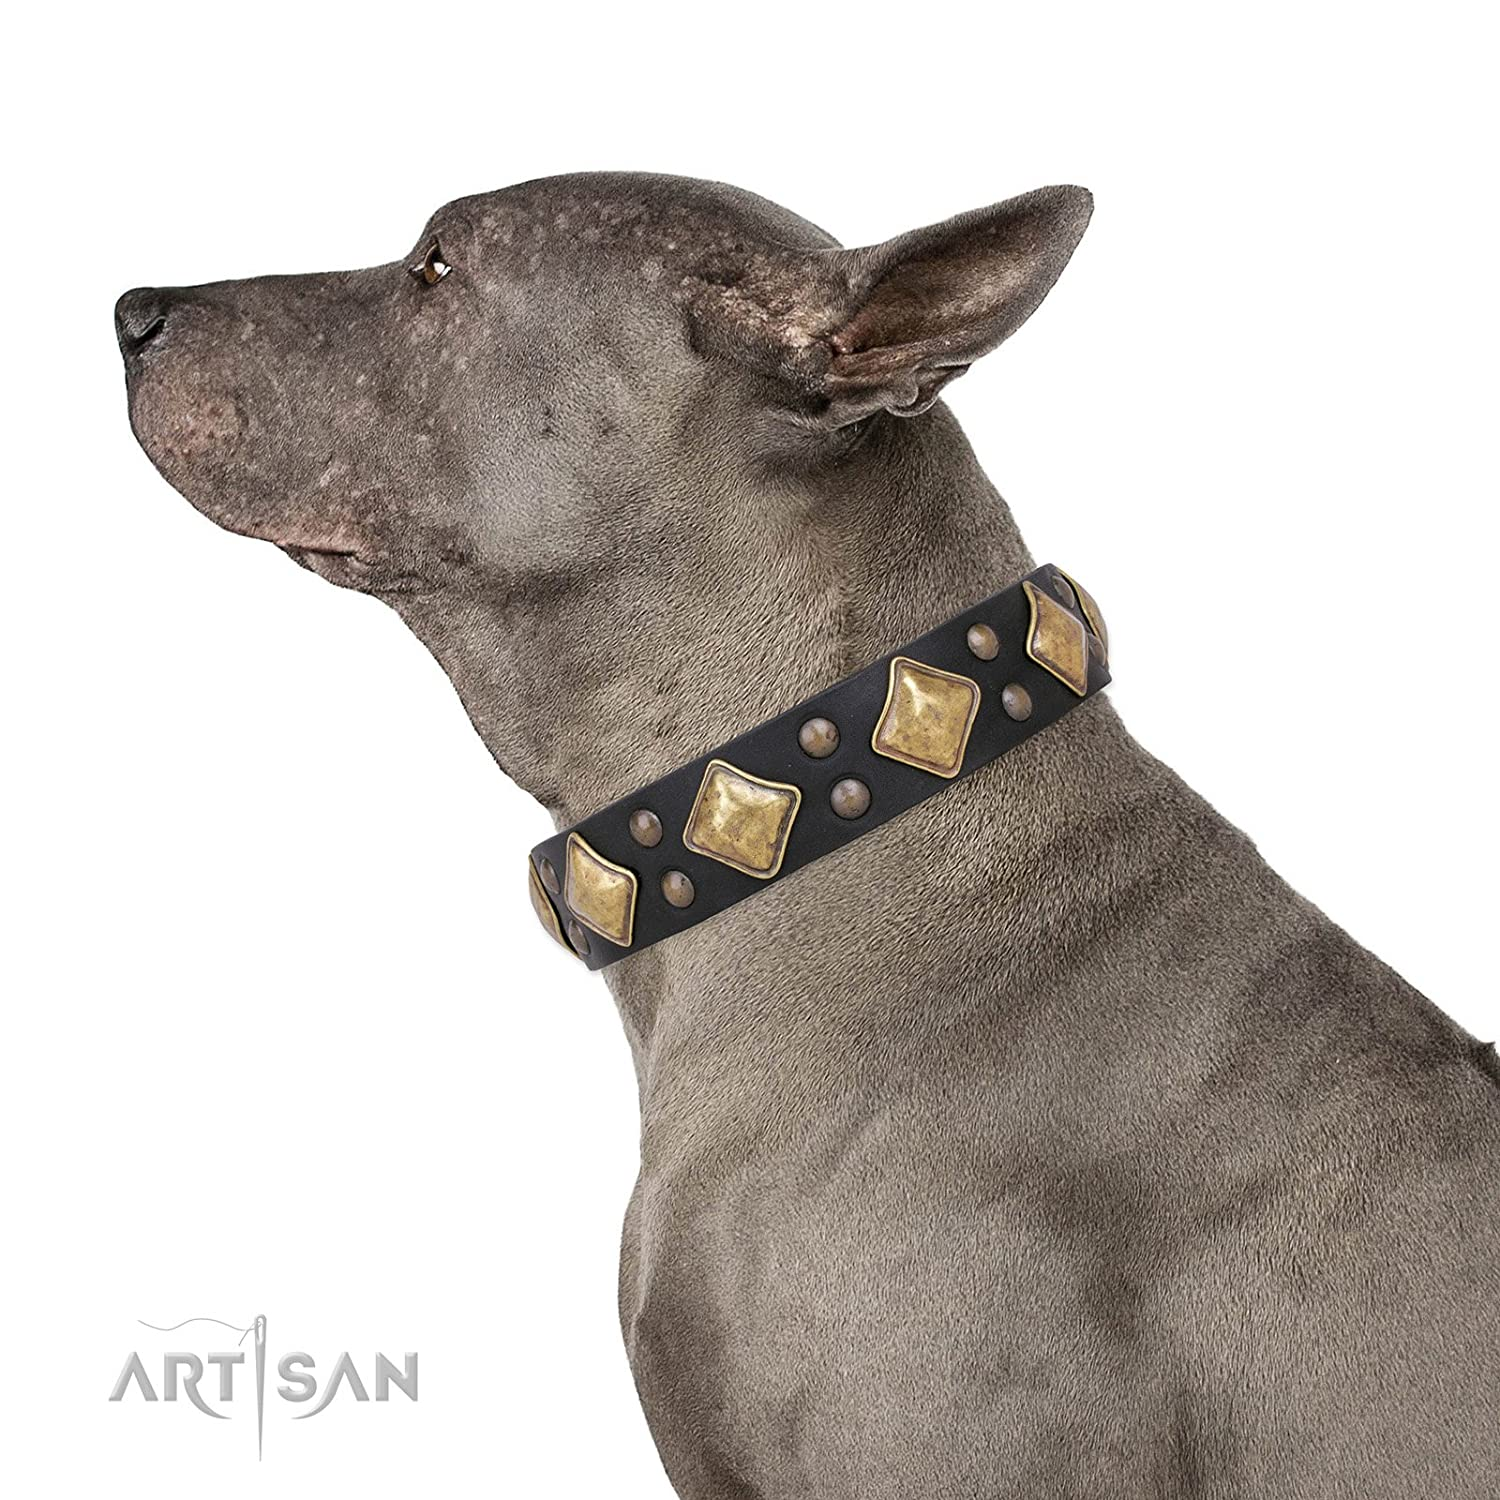 Fits for 19 inch (48cm) dog's neck size FDT Artisan 19 inch Black Leather Dog Collar with Brass Plated Decor Fancy Schmancy 1 1 2 inch (40 mm) Wide